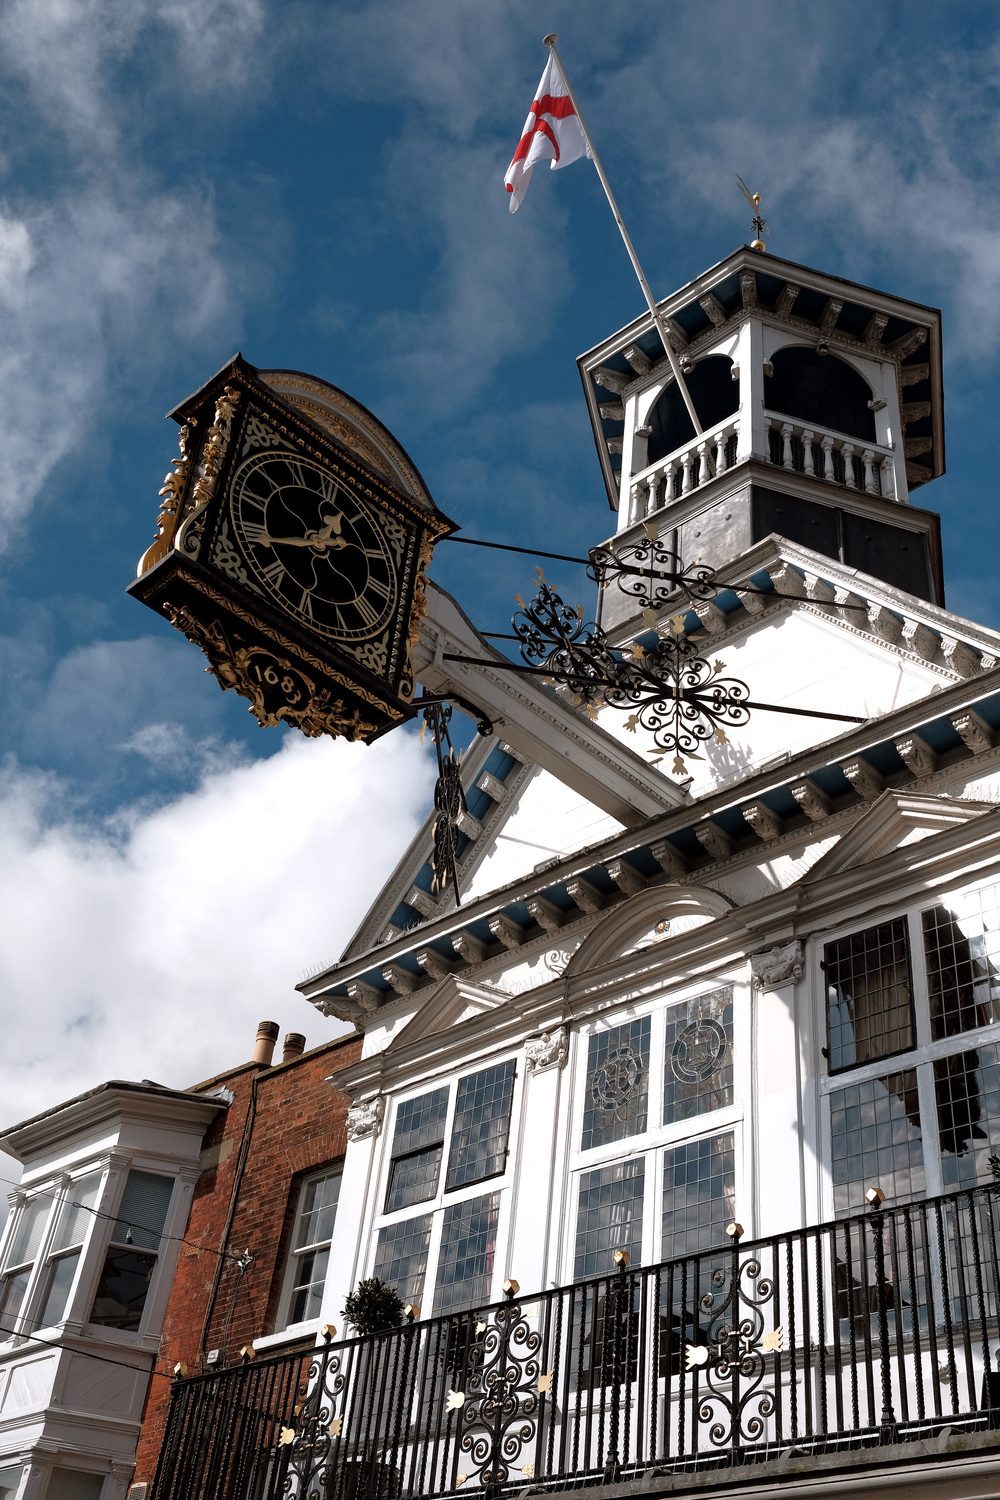 Guildford High Street clock, 35mm f/1.4